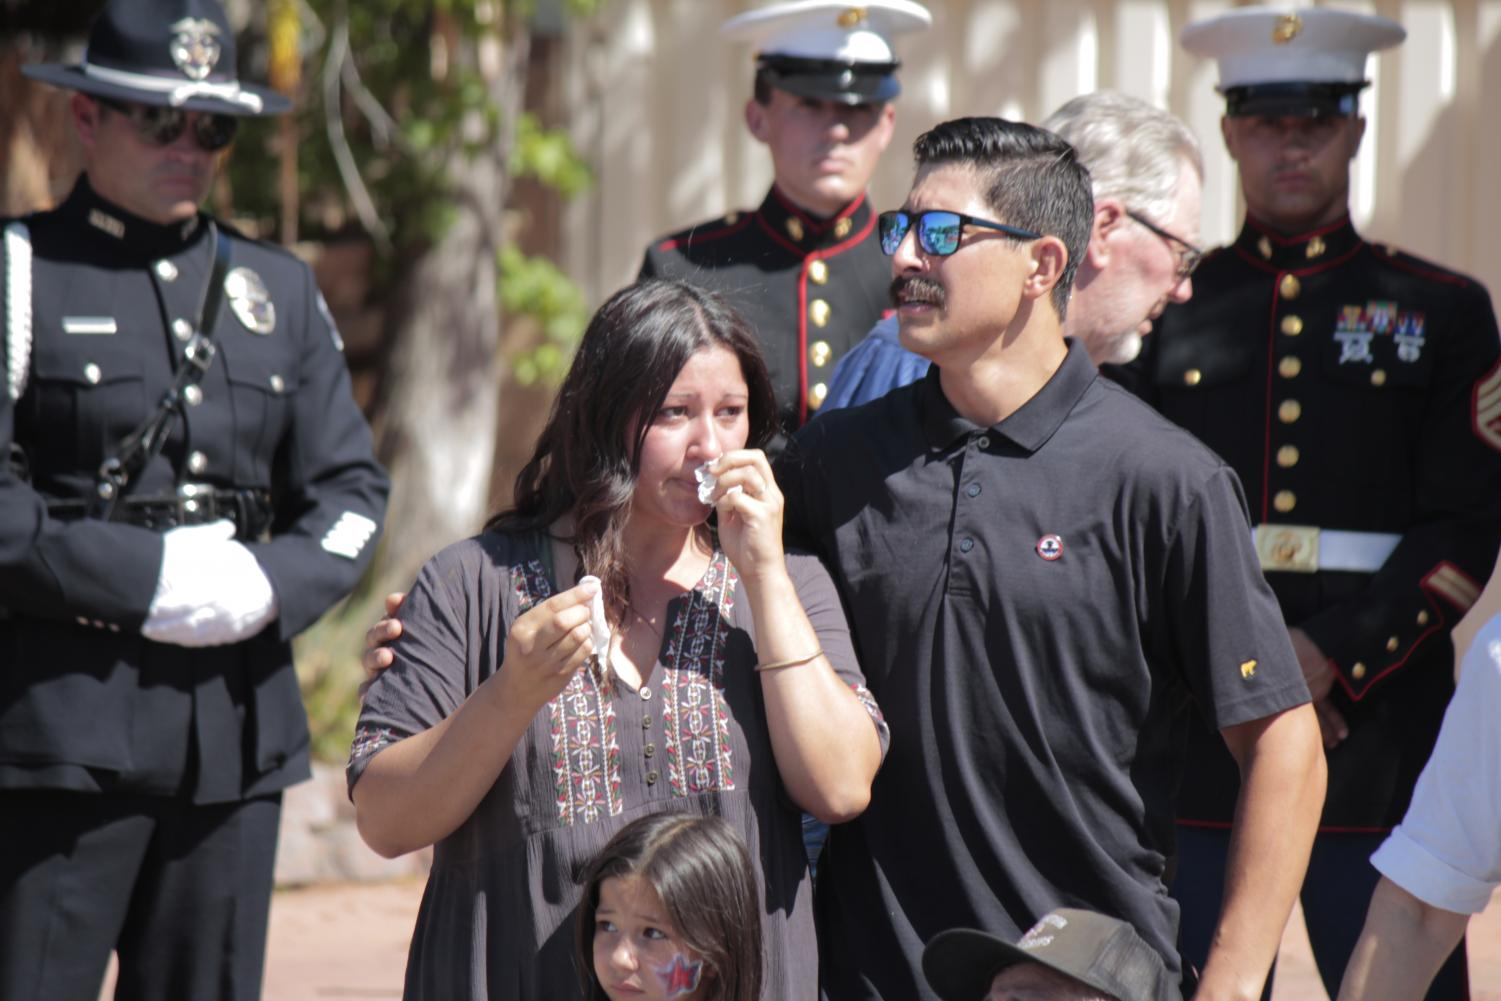 Andrea Pongo, her husband Andreas Pongo and their daughter Noelle Pongo, 5, are overwhelmed with emotion on April 26, 2020, during a parade honoring Andreas's brother Diego Pongo, a Marine who was killed in Iraq in March.